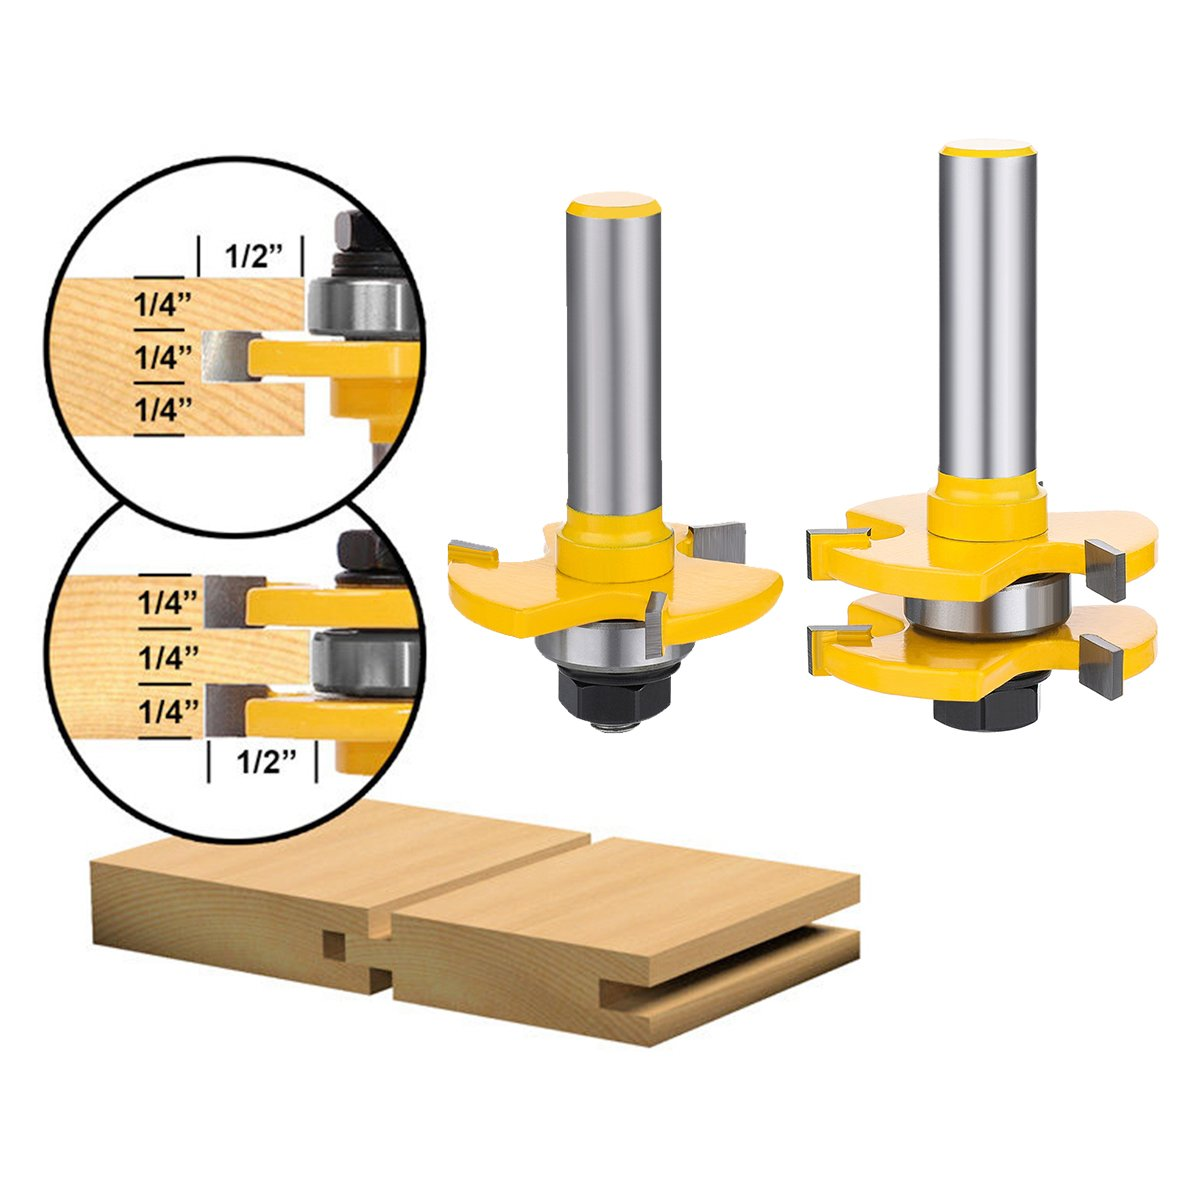 Tongue and Groove Set,DRILLPRO 2PCS Router Bit Set 1/2-Inch Shank T Shape Wood Milling Cutter Woodworking Tool For Doors, Tables, Shelves, Walls, DIY Woodwork by DRILLPRO (Image #2)